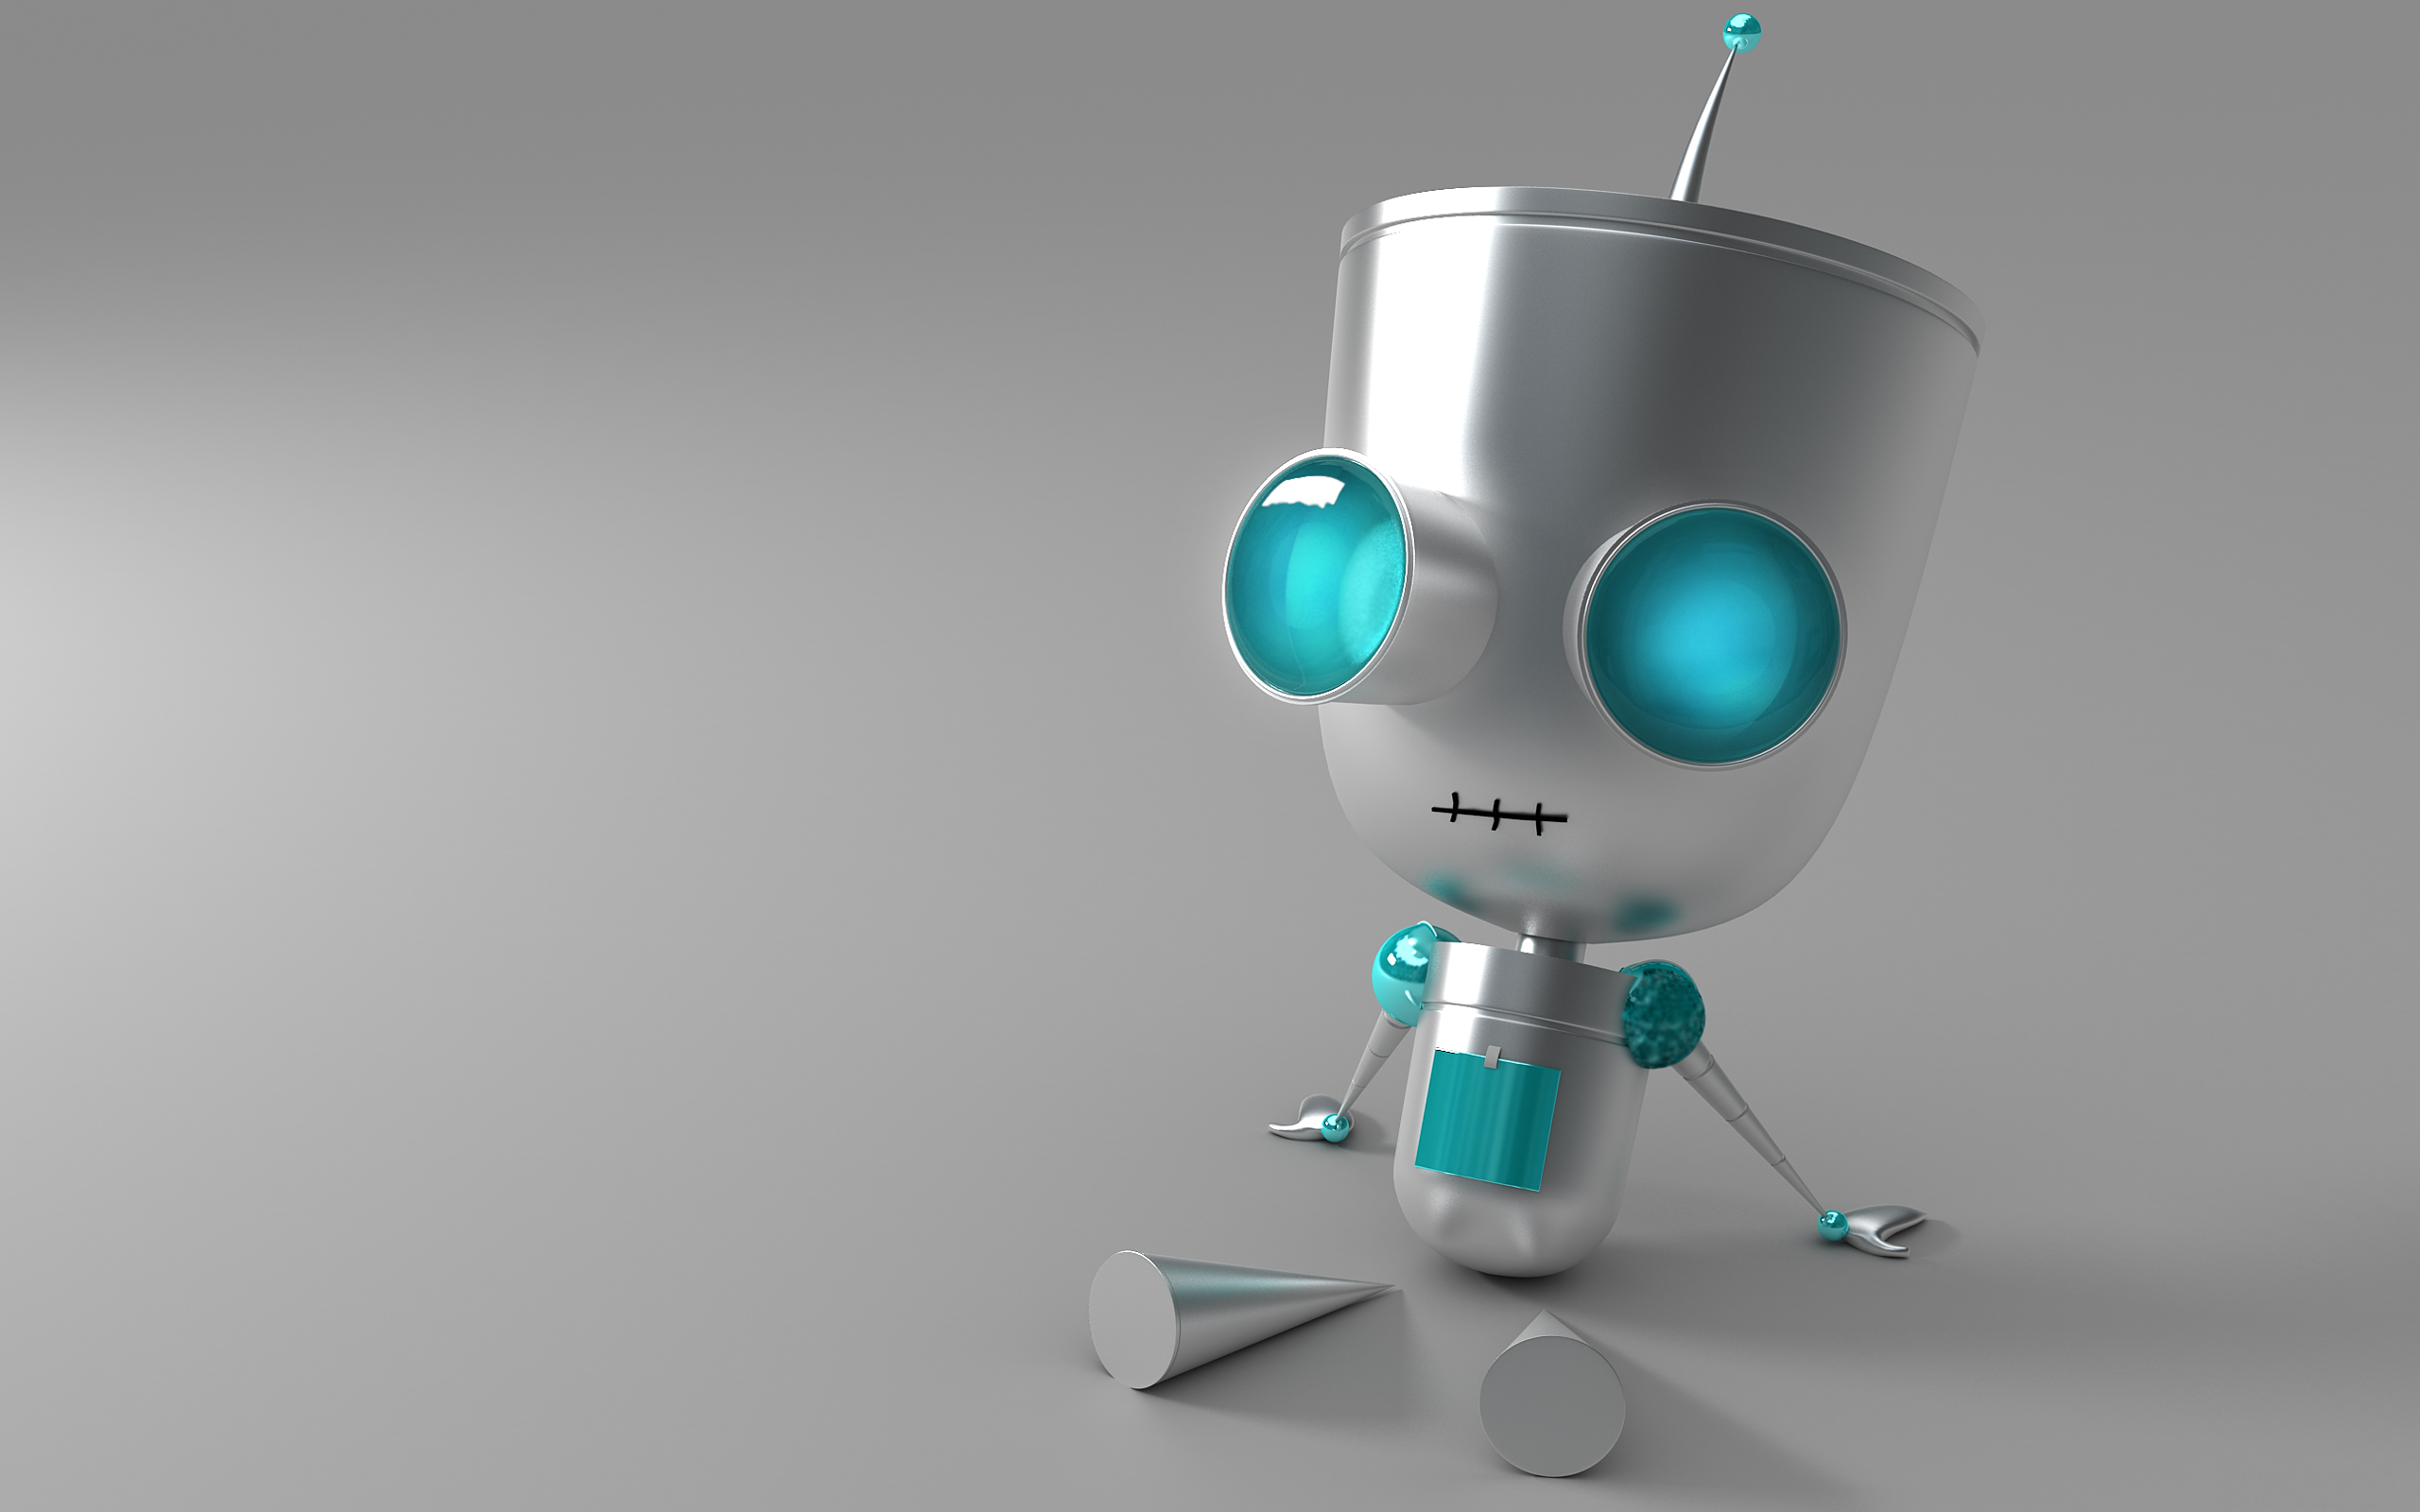 Cute Robot Wallpaper